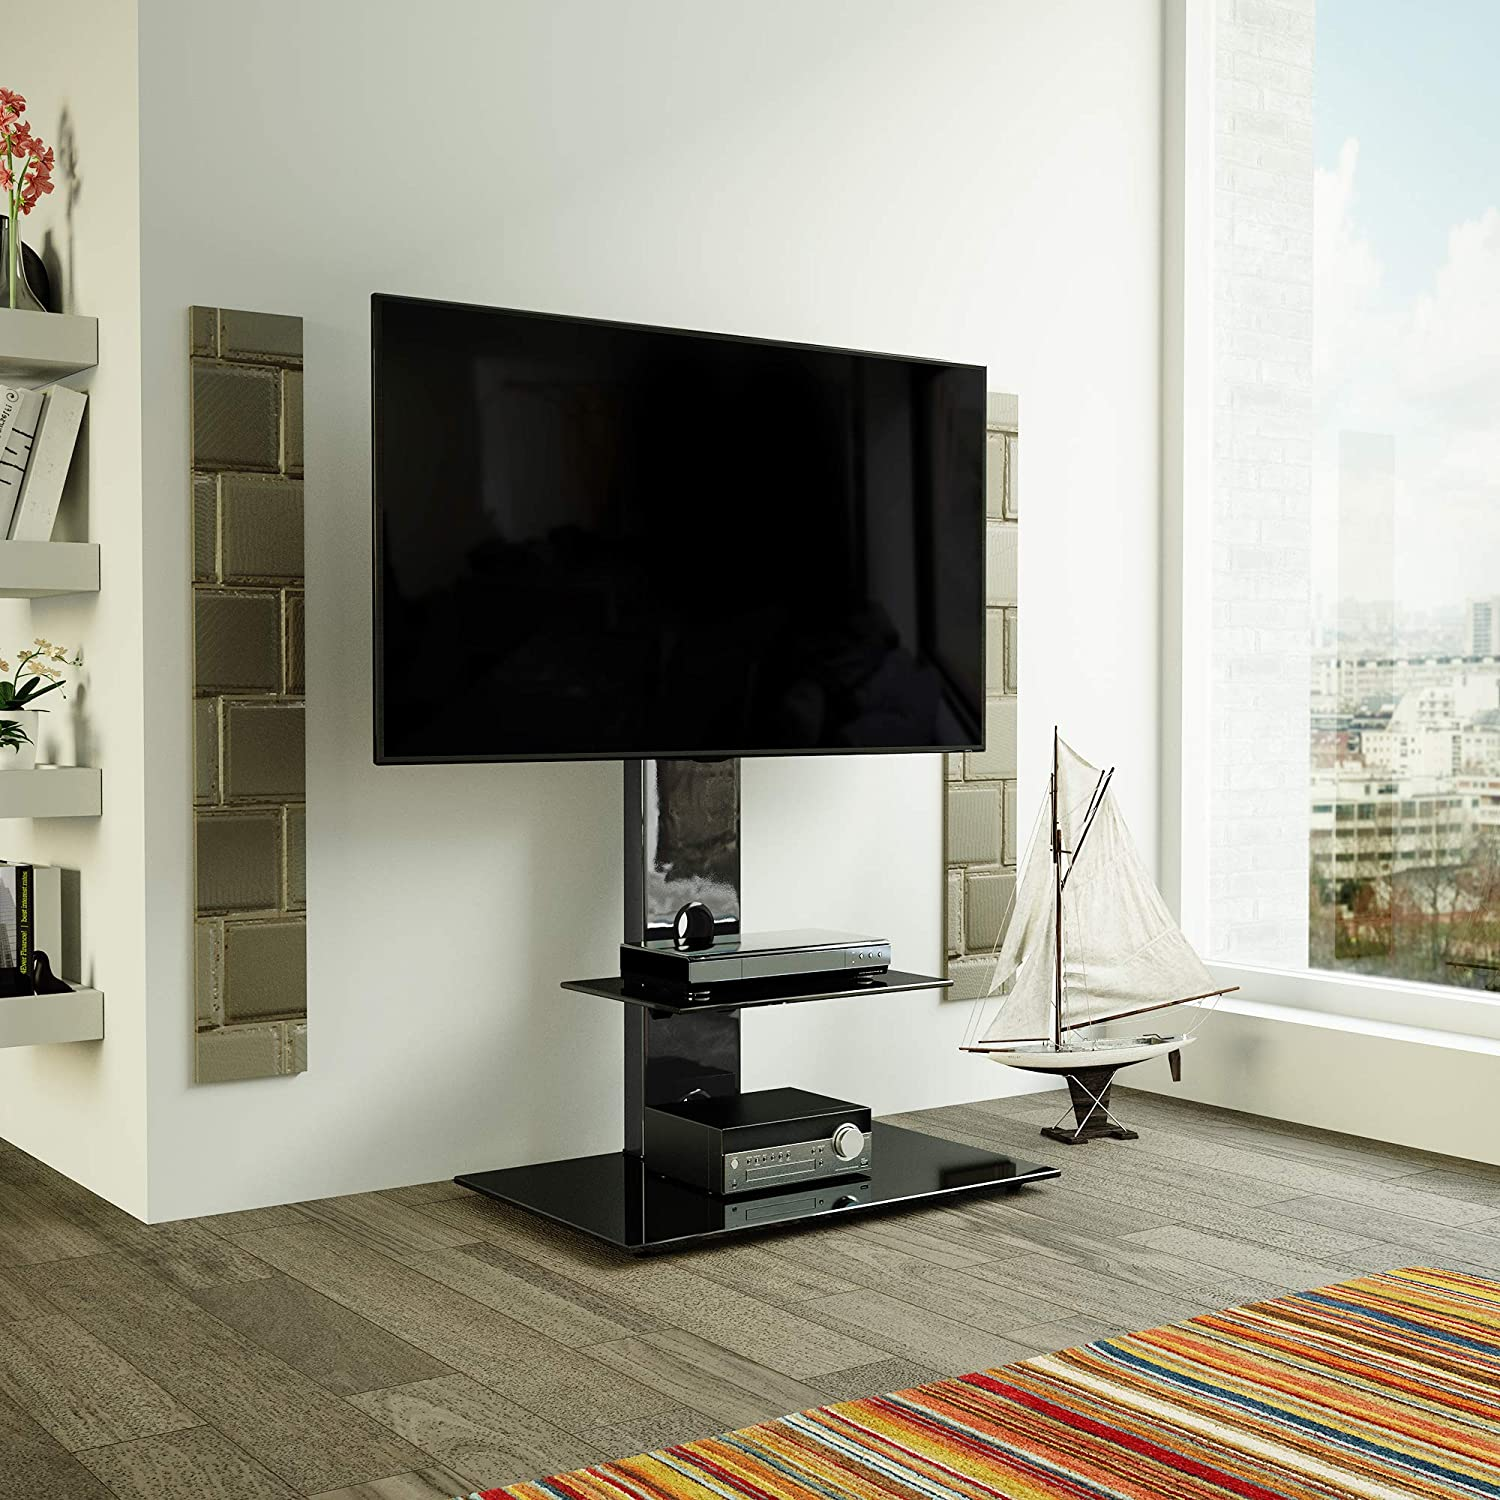 Avf Fsl700leb A Lesina Tv Floor Stand With Tv Mounting Column For 32 Inch To 65 Inch Tvs Black Home Audio Theater